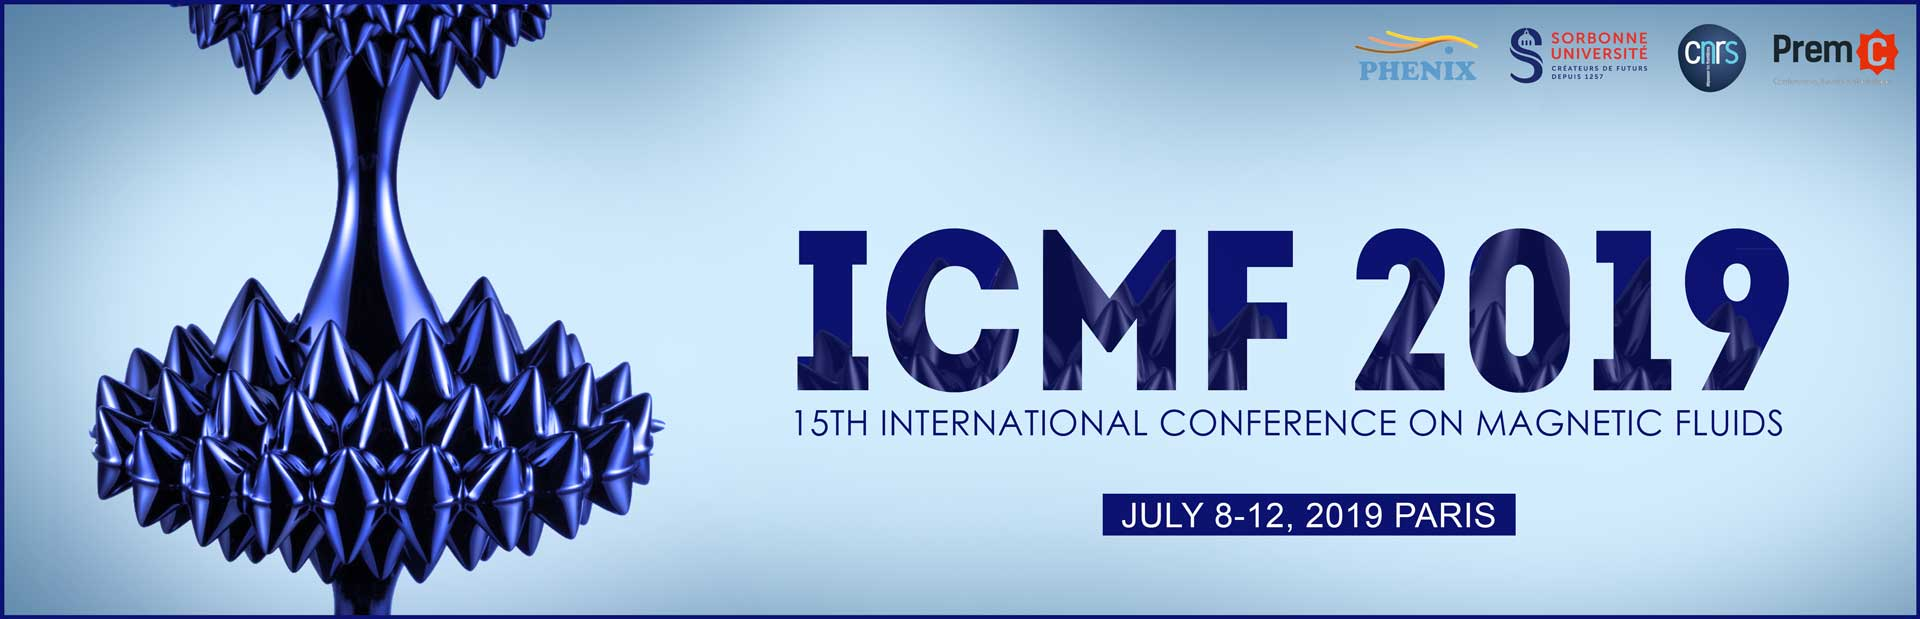 15th International Conference on Magnetic Fluids - ICMF 2019